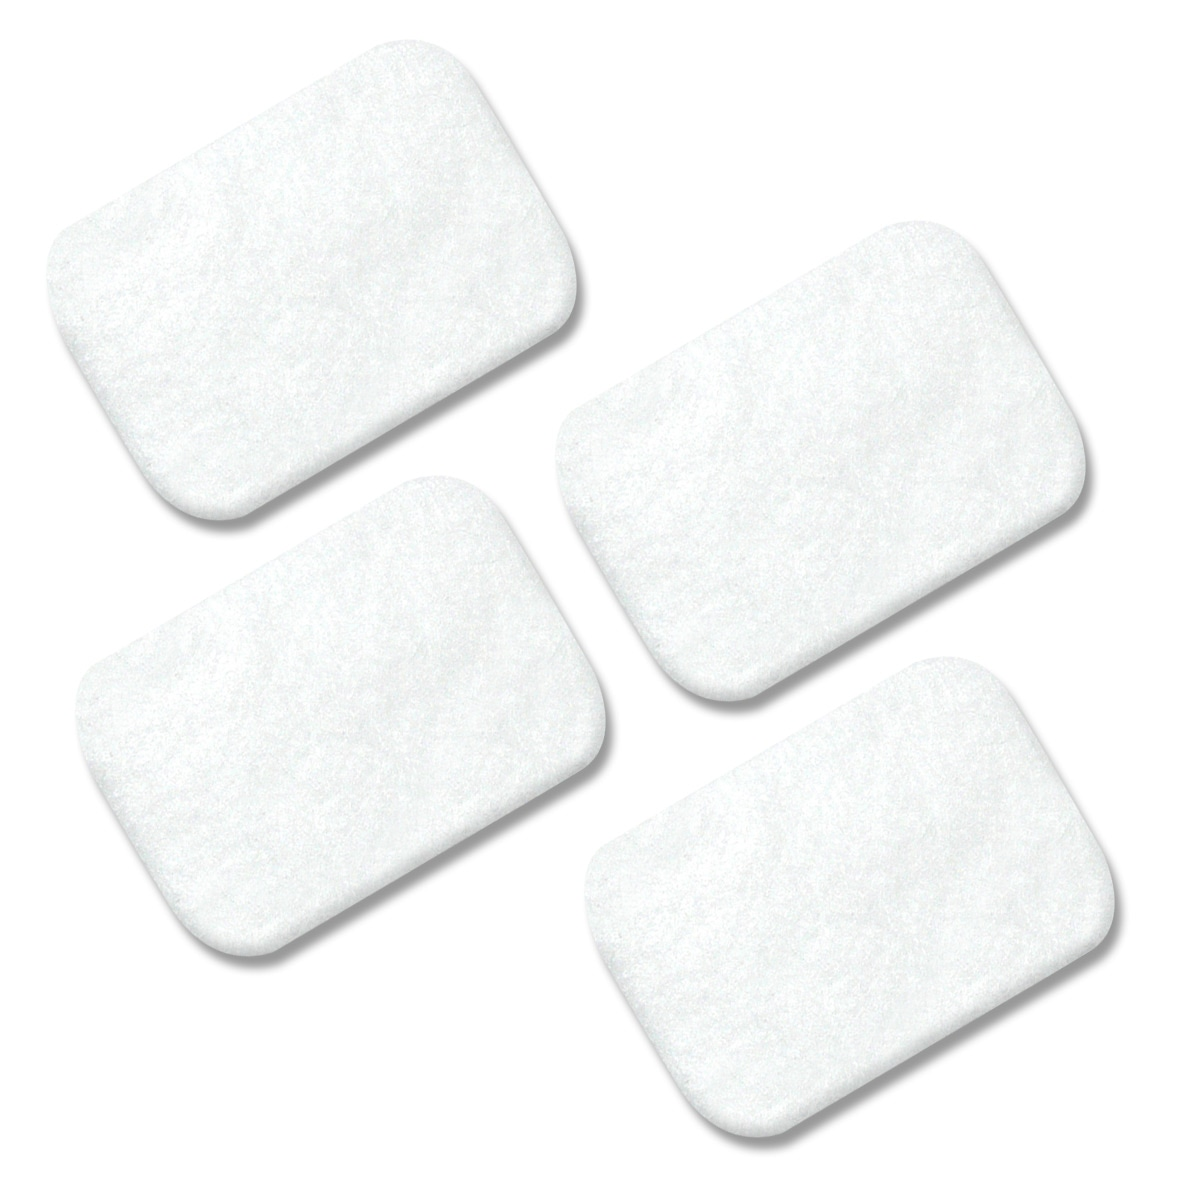 Disposable Ultra Fine Filters for IntelliPAP Series CPAP & BiPAP Machines - 4 Pack